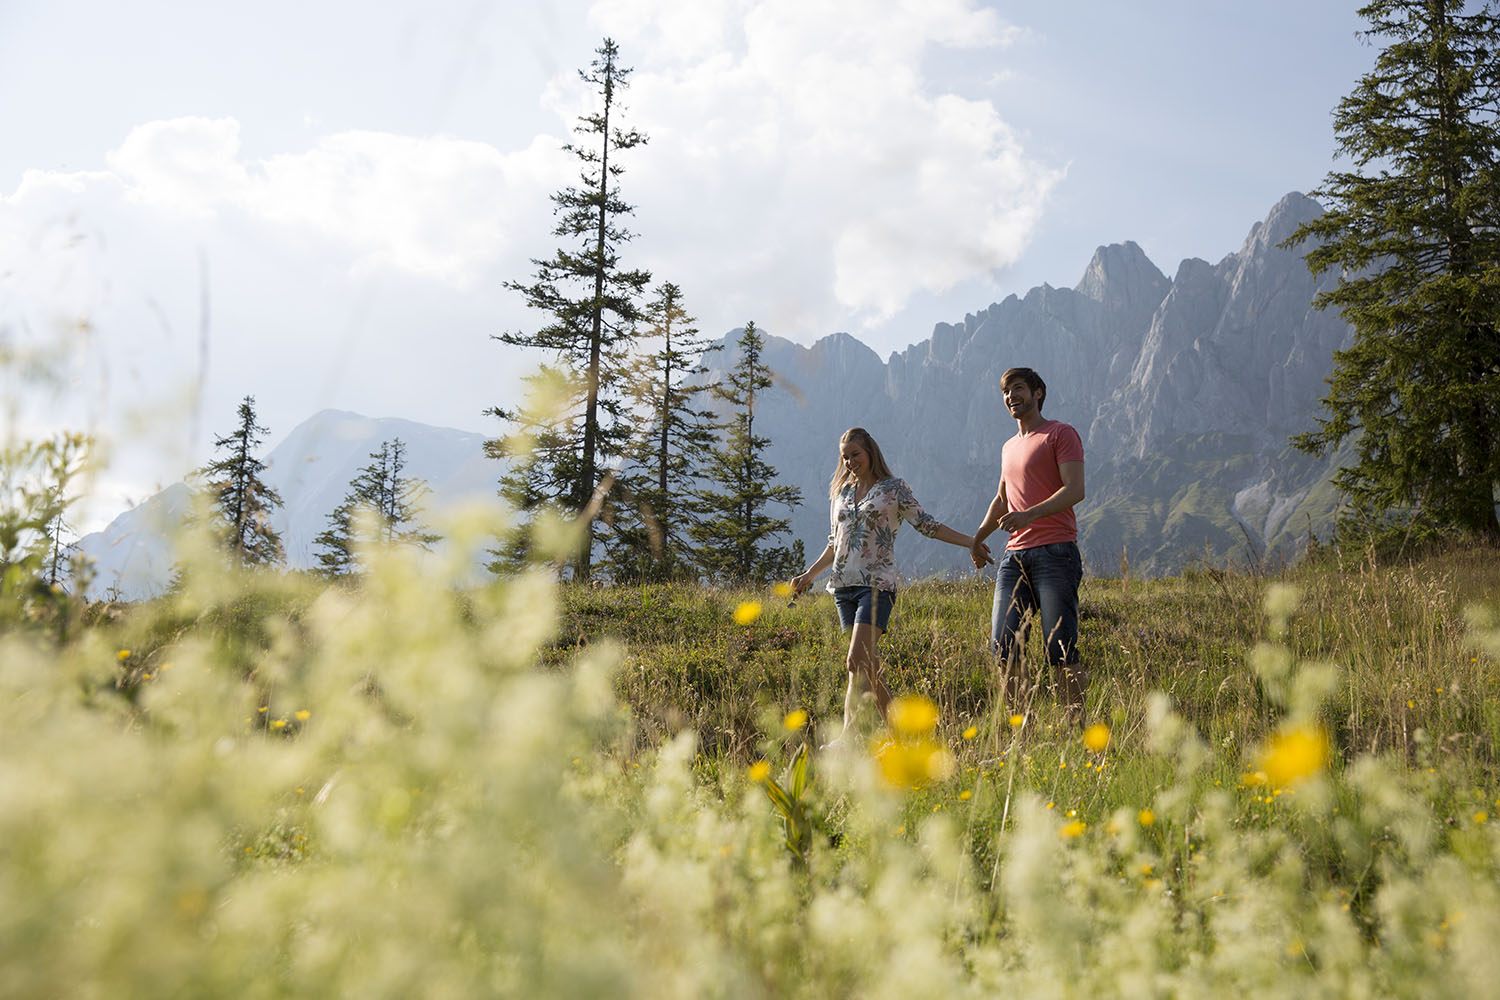 Summer in Salzburger Land - timeouts amid pristine nature